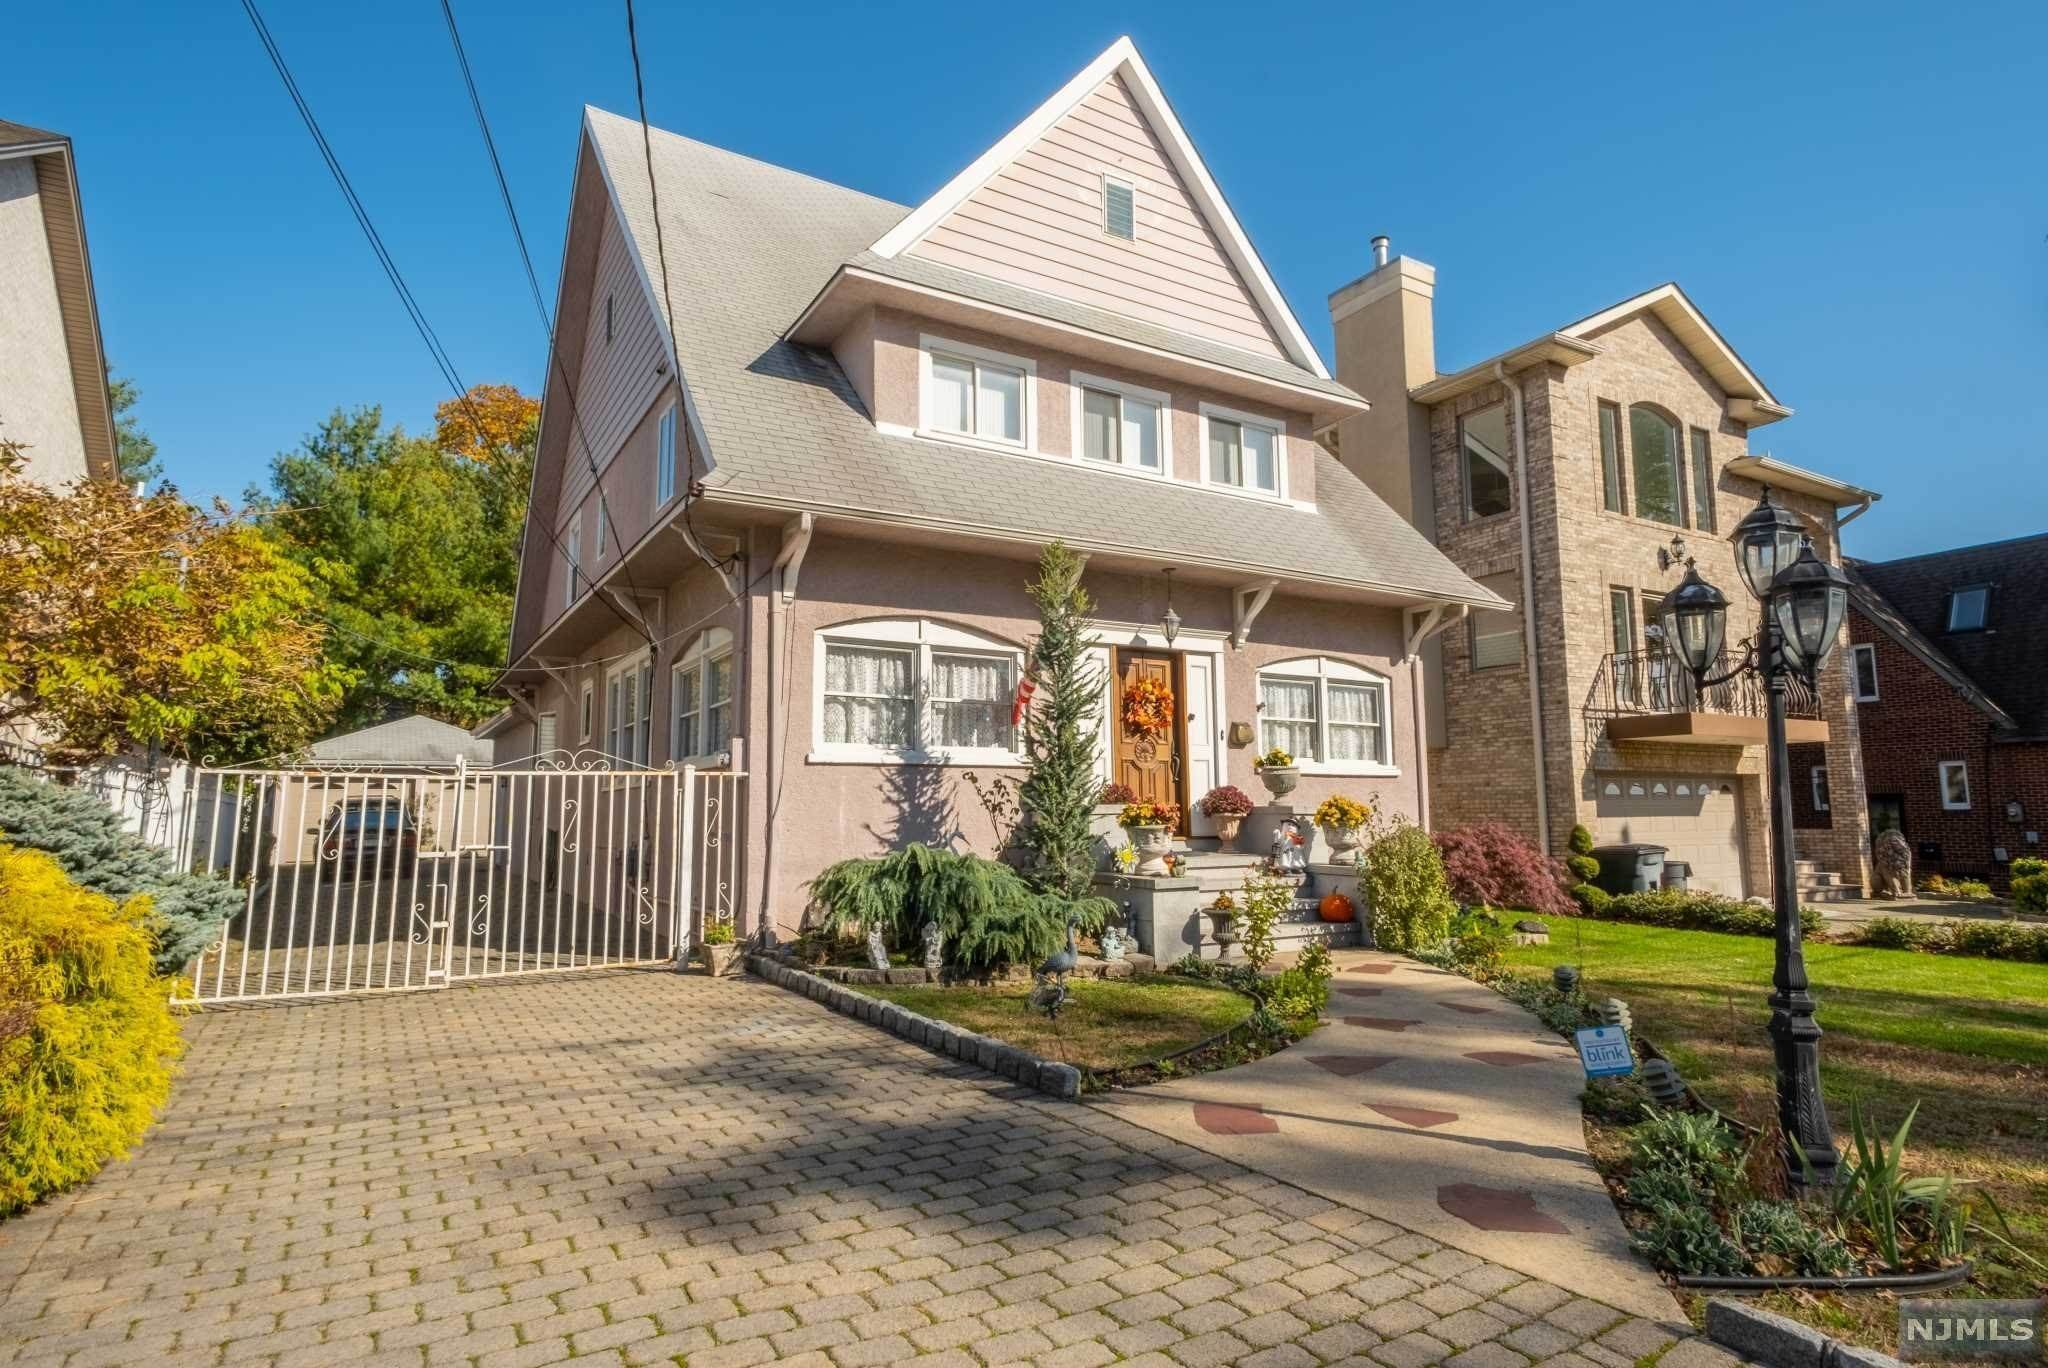 Single Family Home for Sale at 23 Riverview Avenue Cliffside Park, New Jersey, 07010 United States